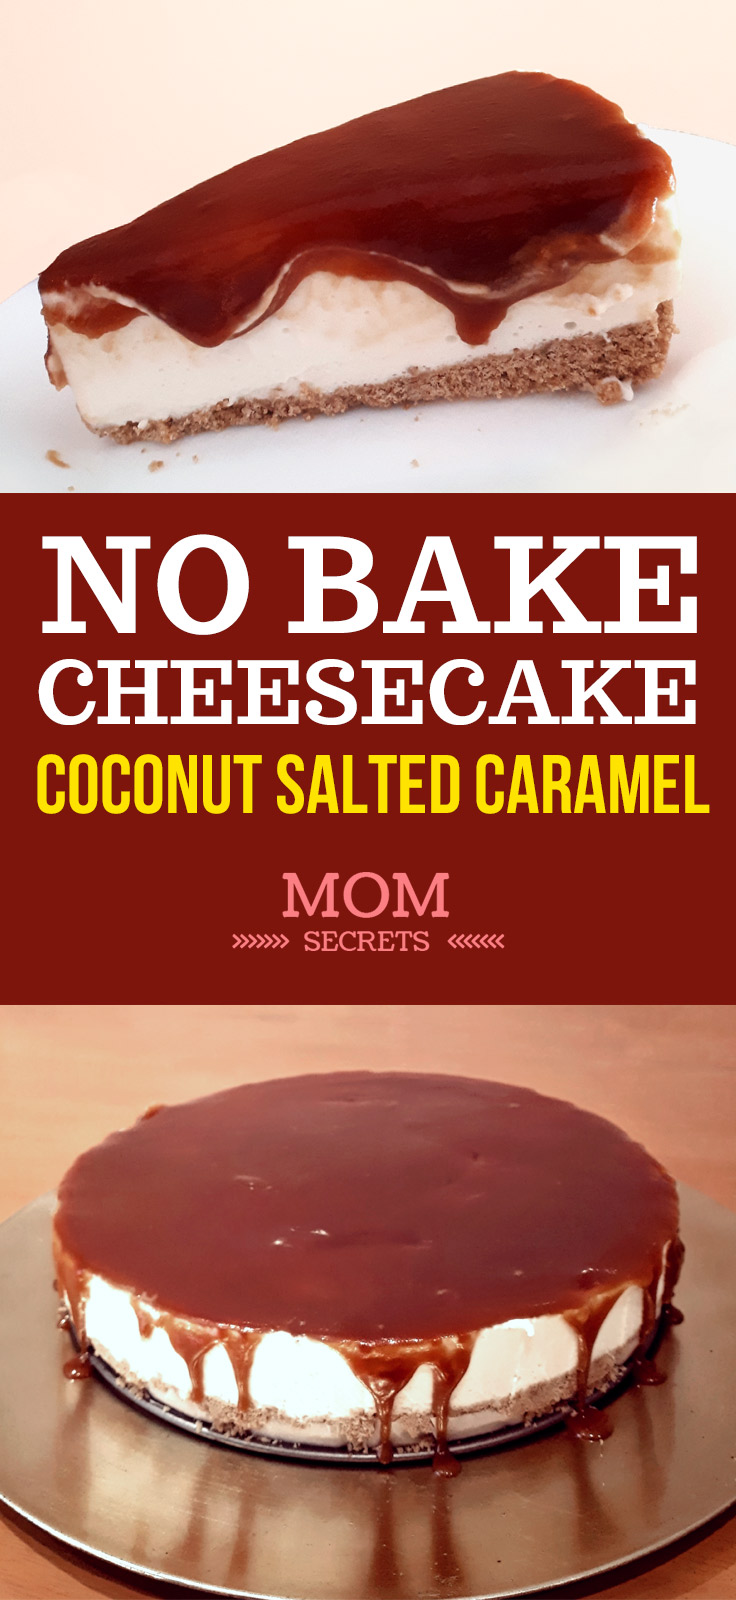 No bake cheesecake recipe with salted caramel sauce. Salted caramel cheesecake